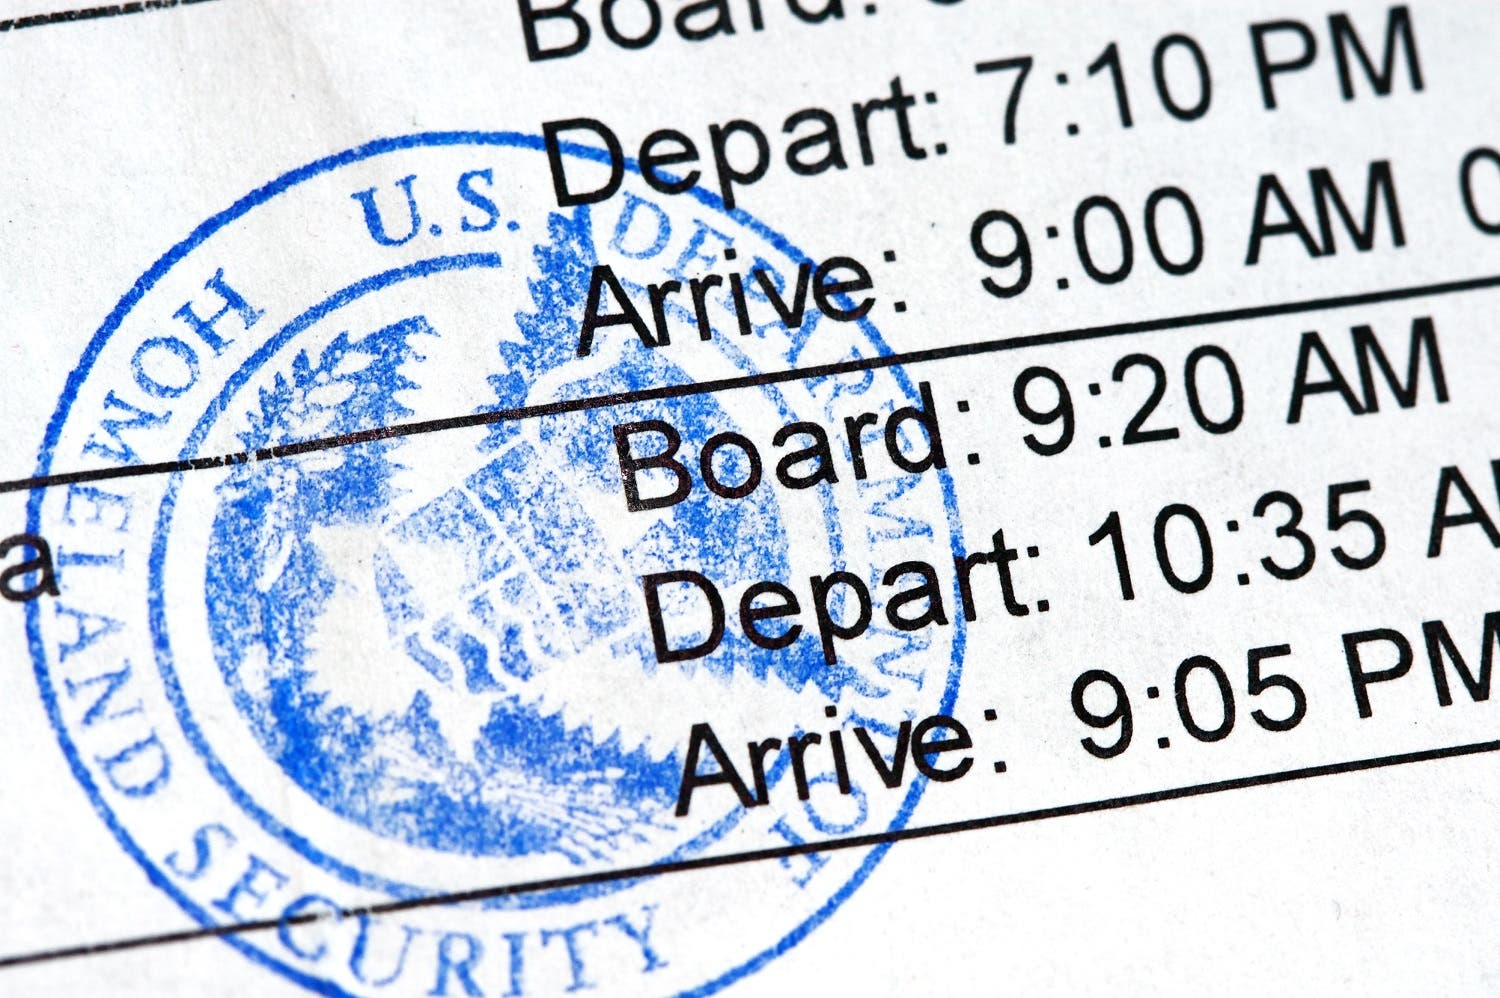 Airline boarding pass with public seal of Homeland Security. (Shutterstock)